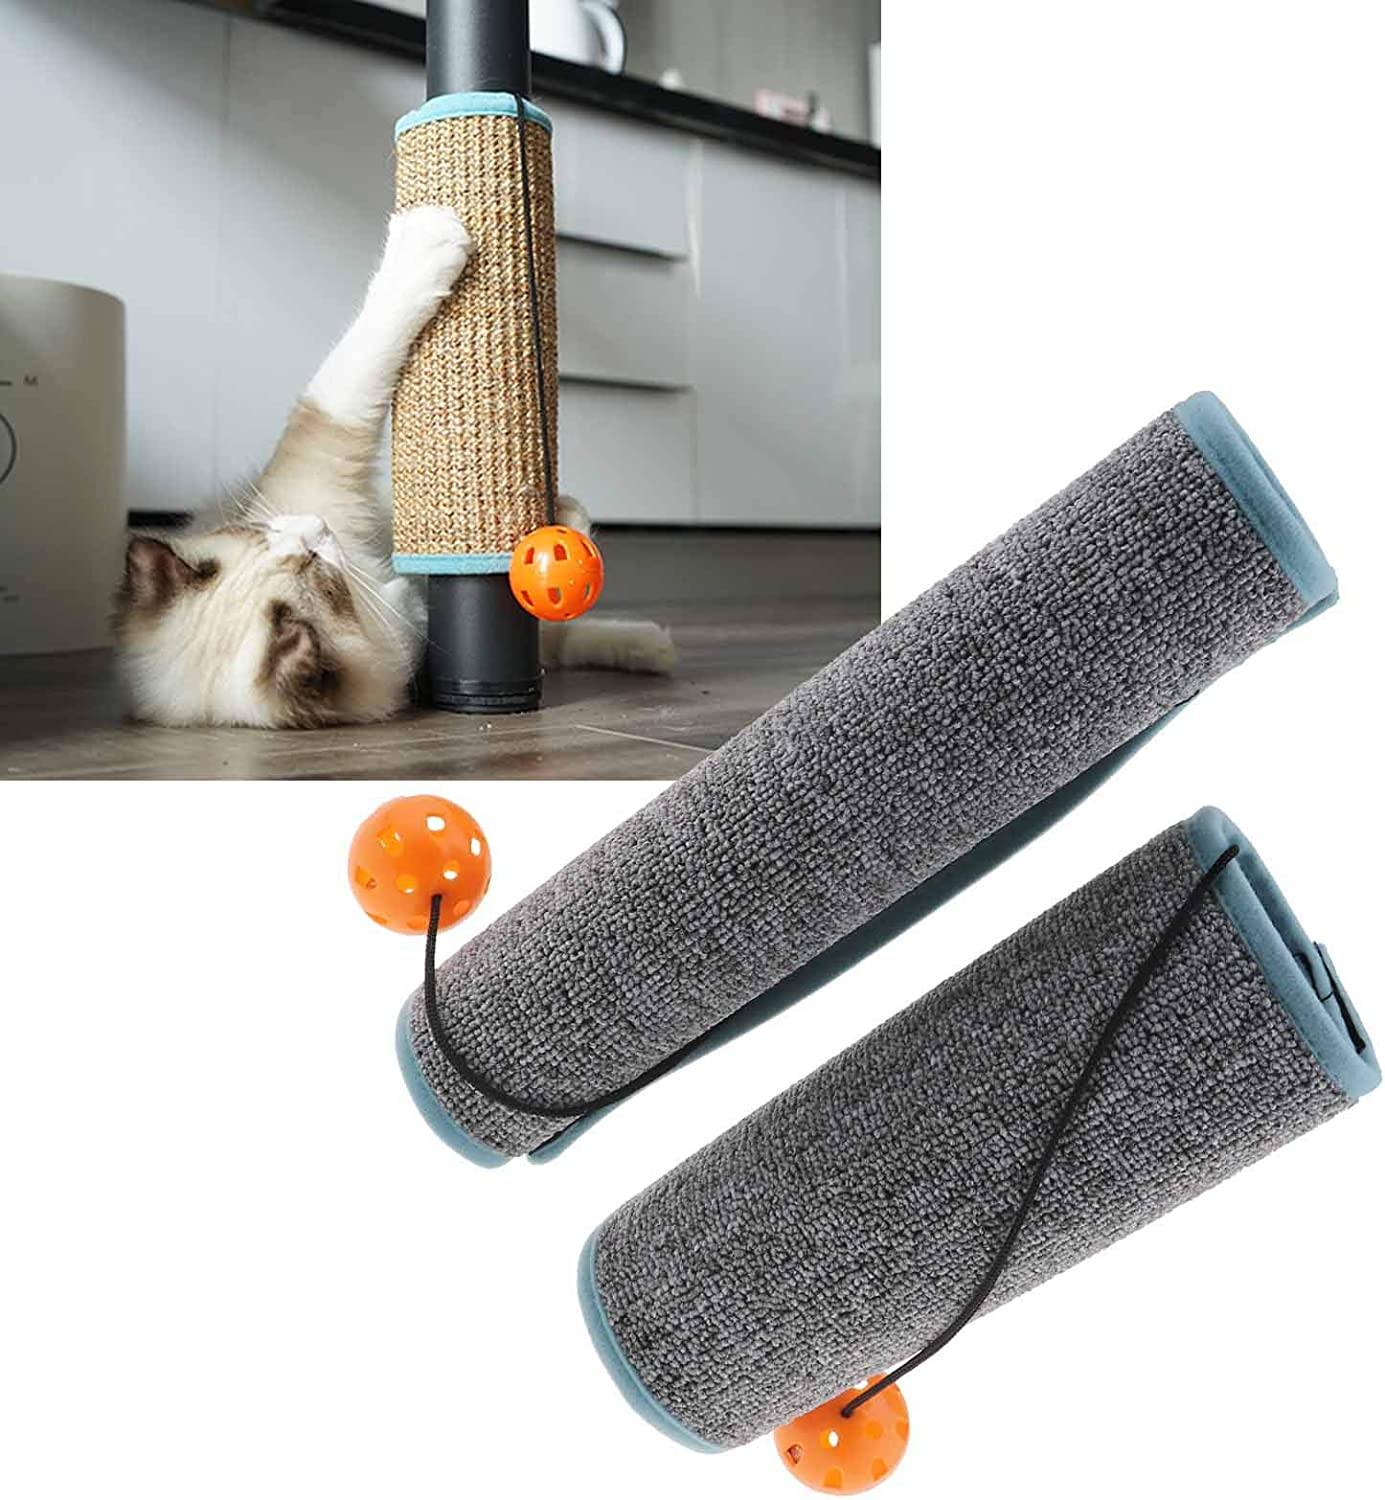 OTOTEC 2pcs 12.4x9.6inch Pet Cat Scratching Protector Protection Around Furniture Sofa Table Chair Desk Leg